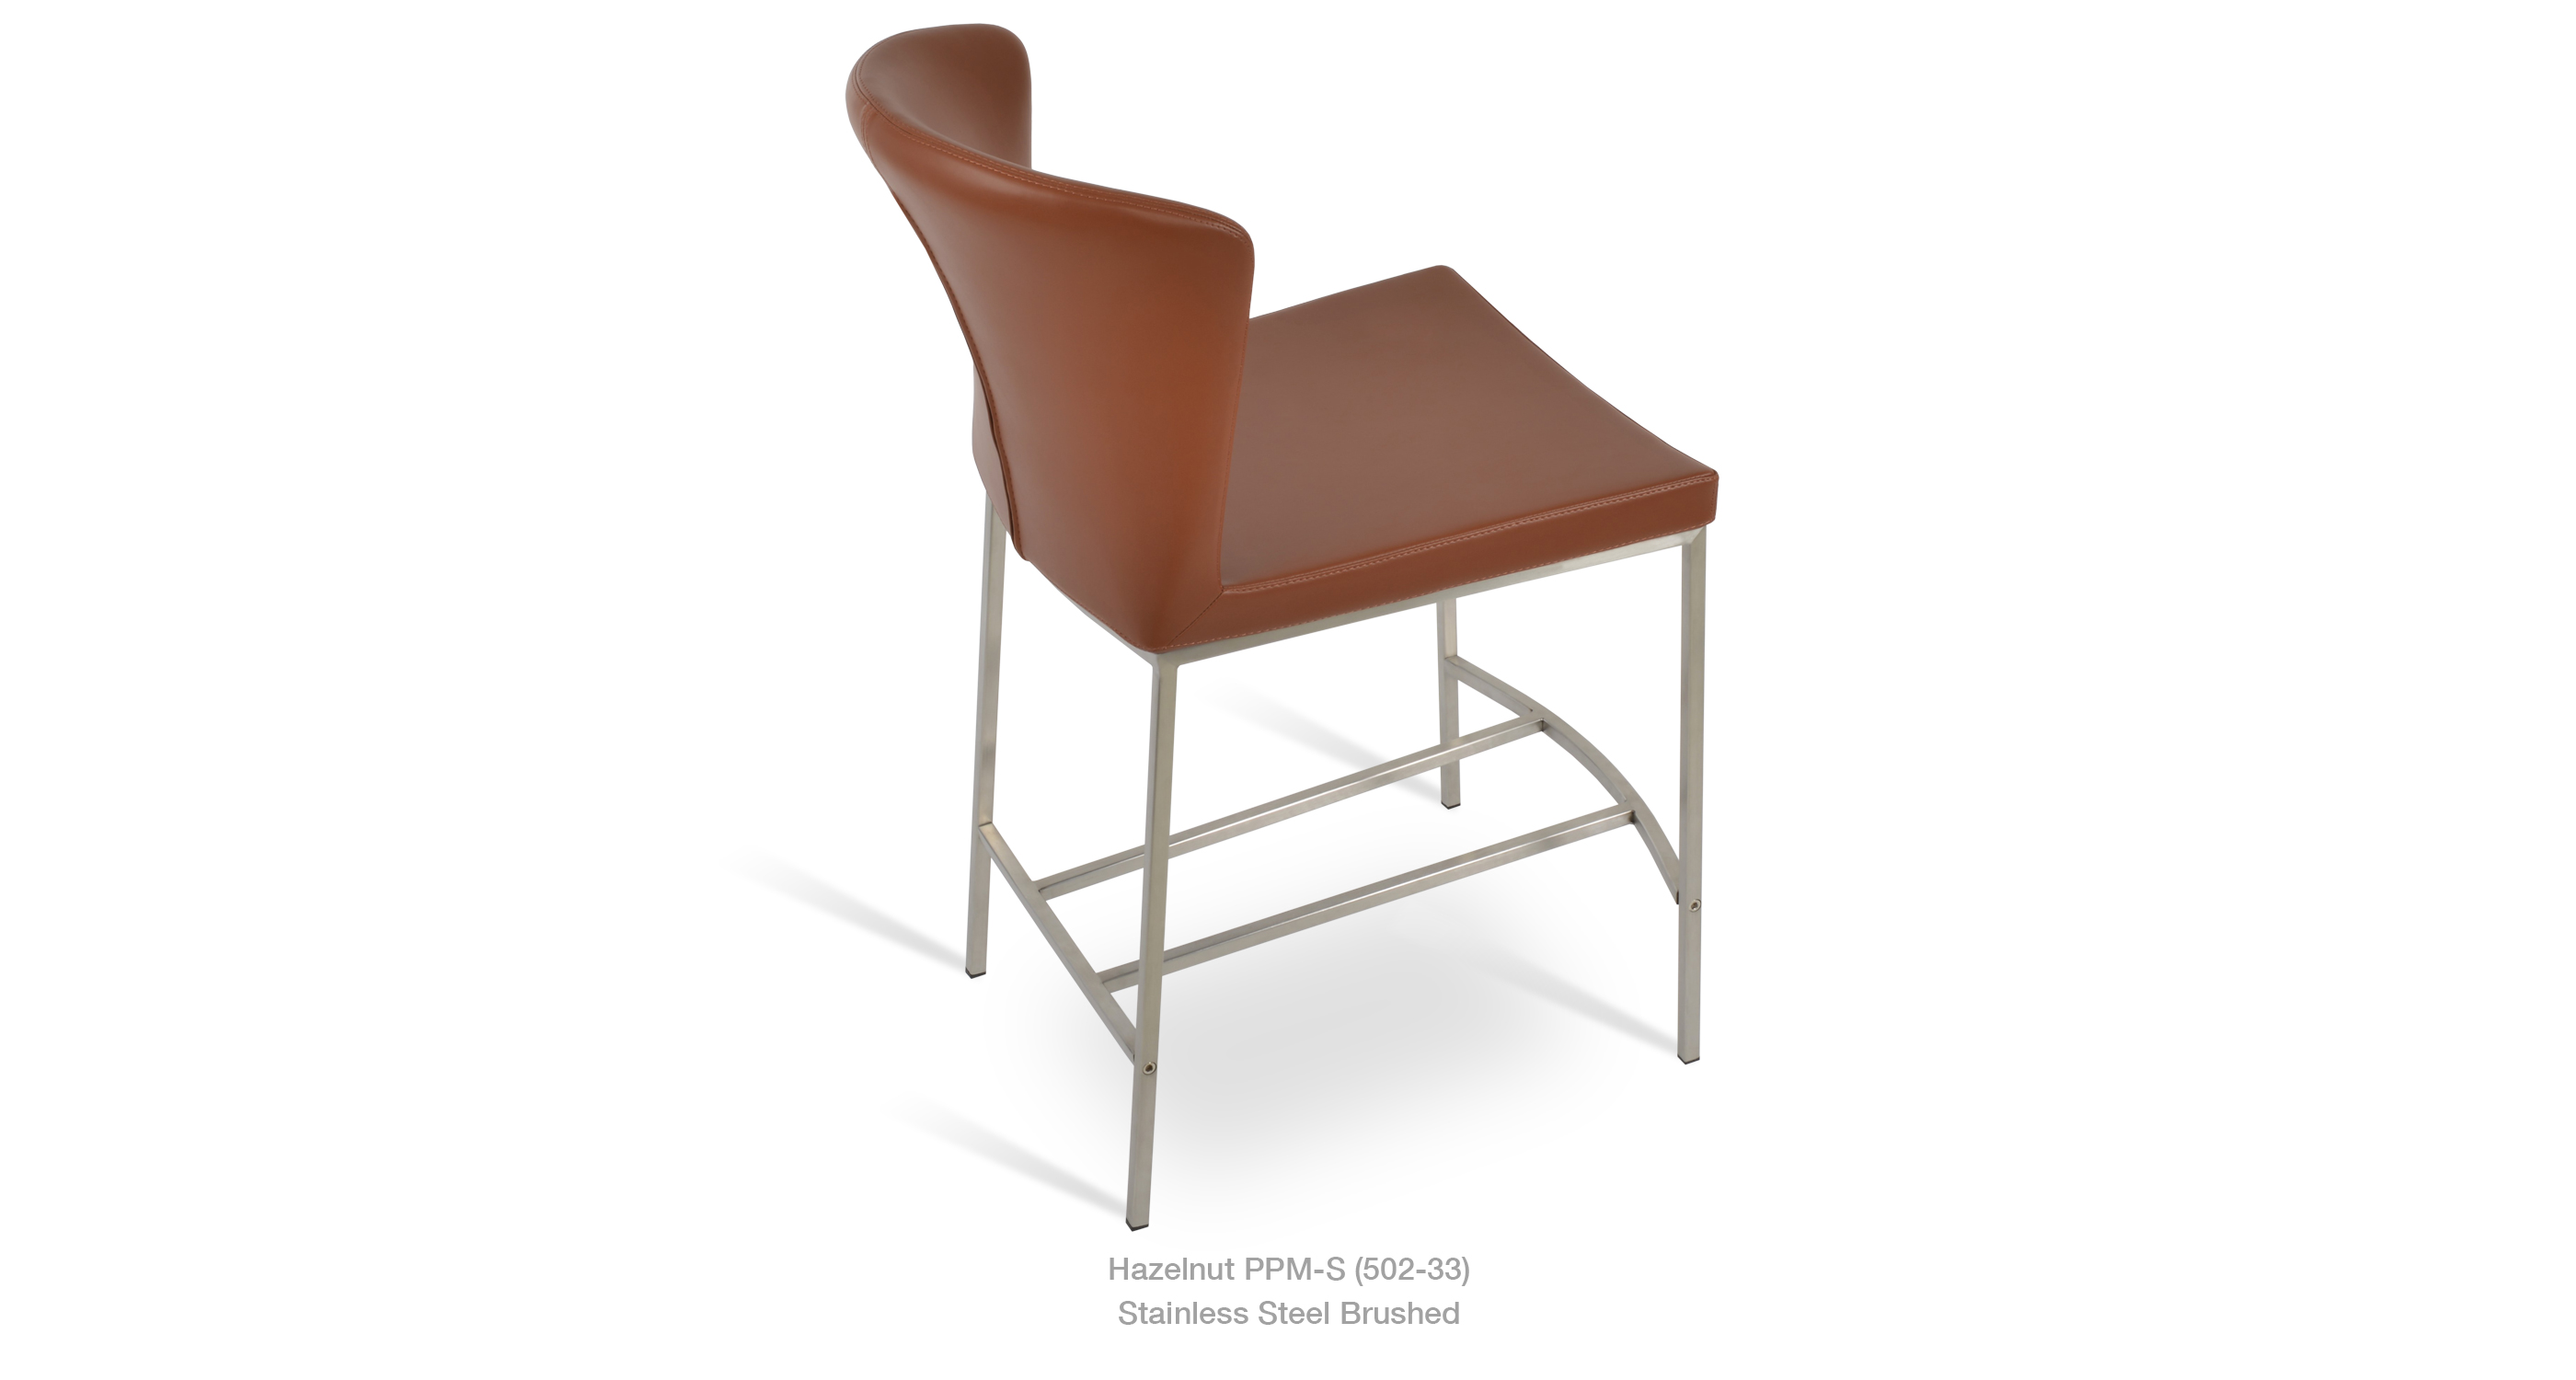 2020 01 28 Capri Metal Stool Hazelnut Ppm